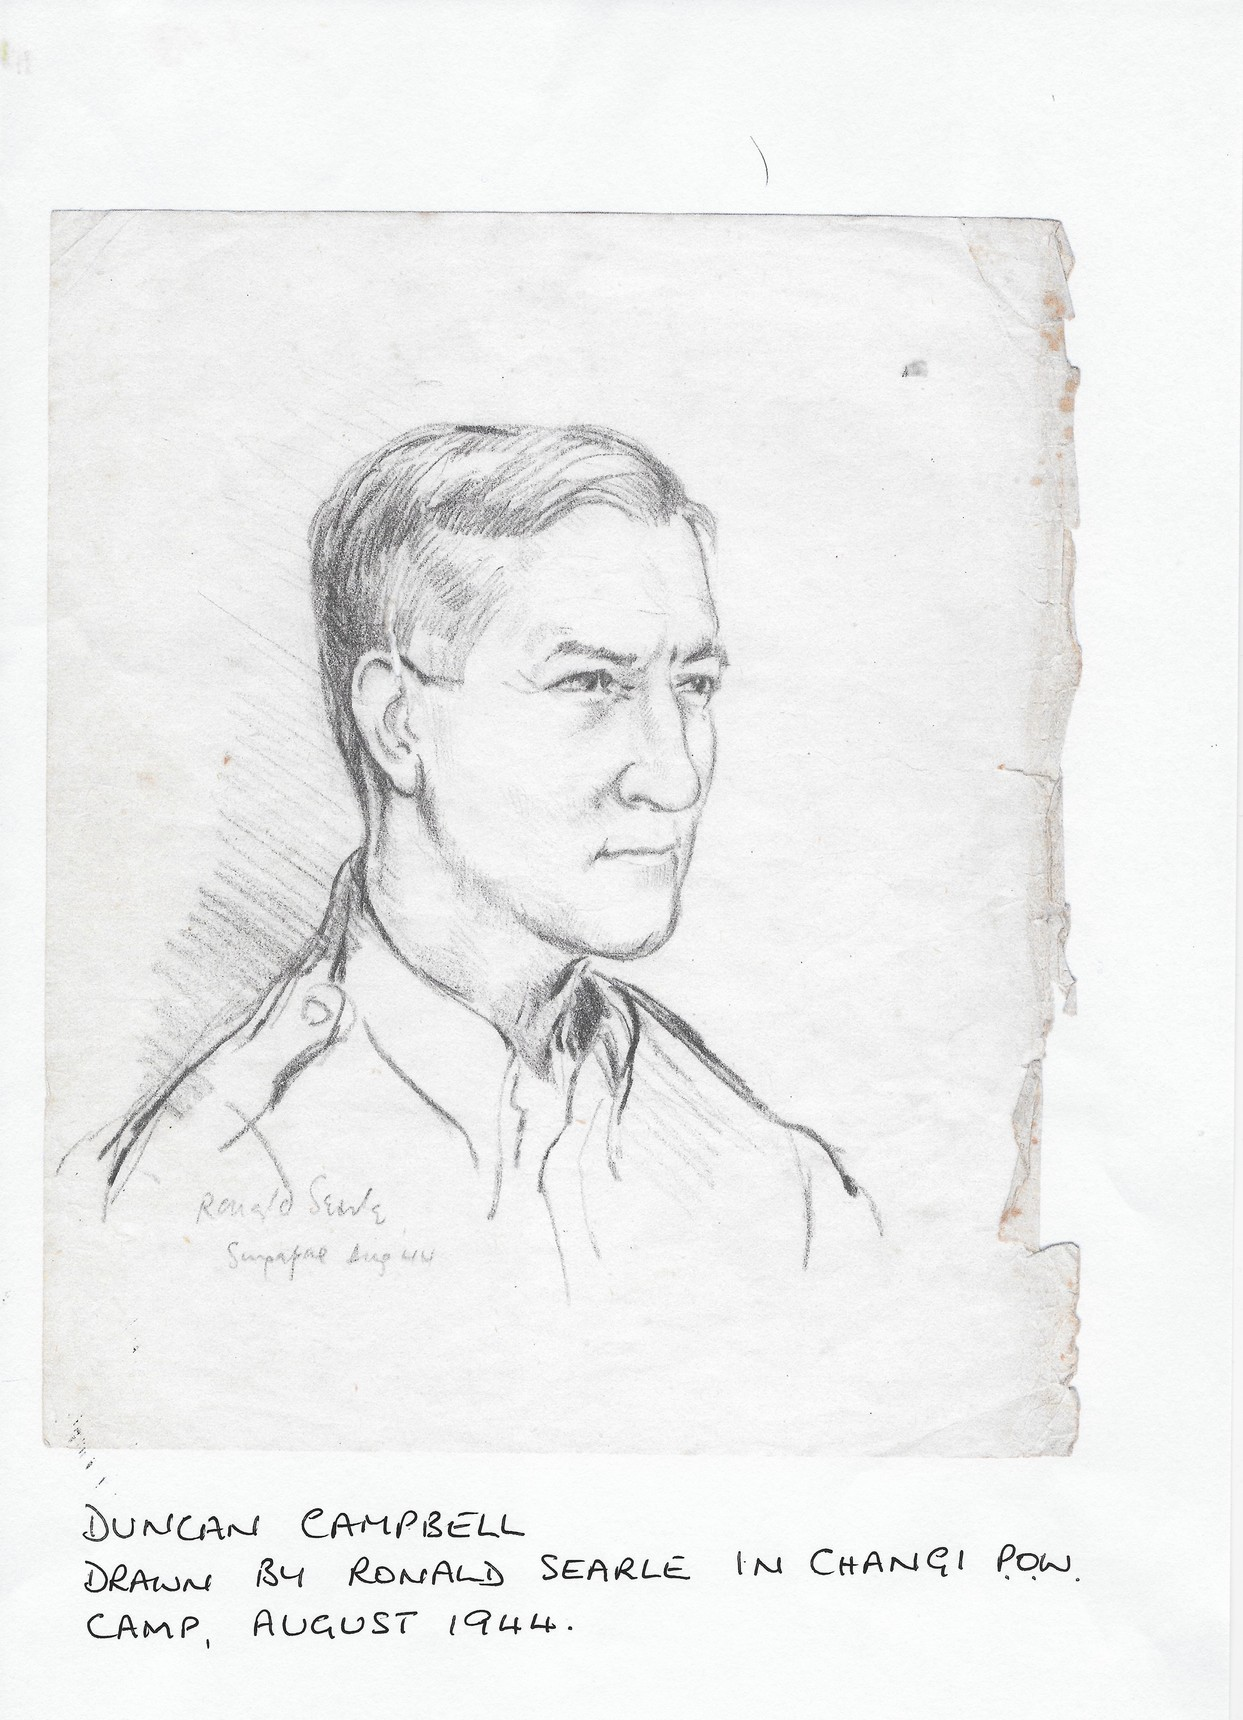 Duncan Campbell, Anne Shaw's father